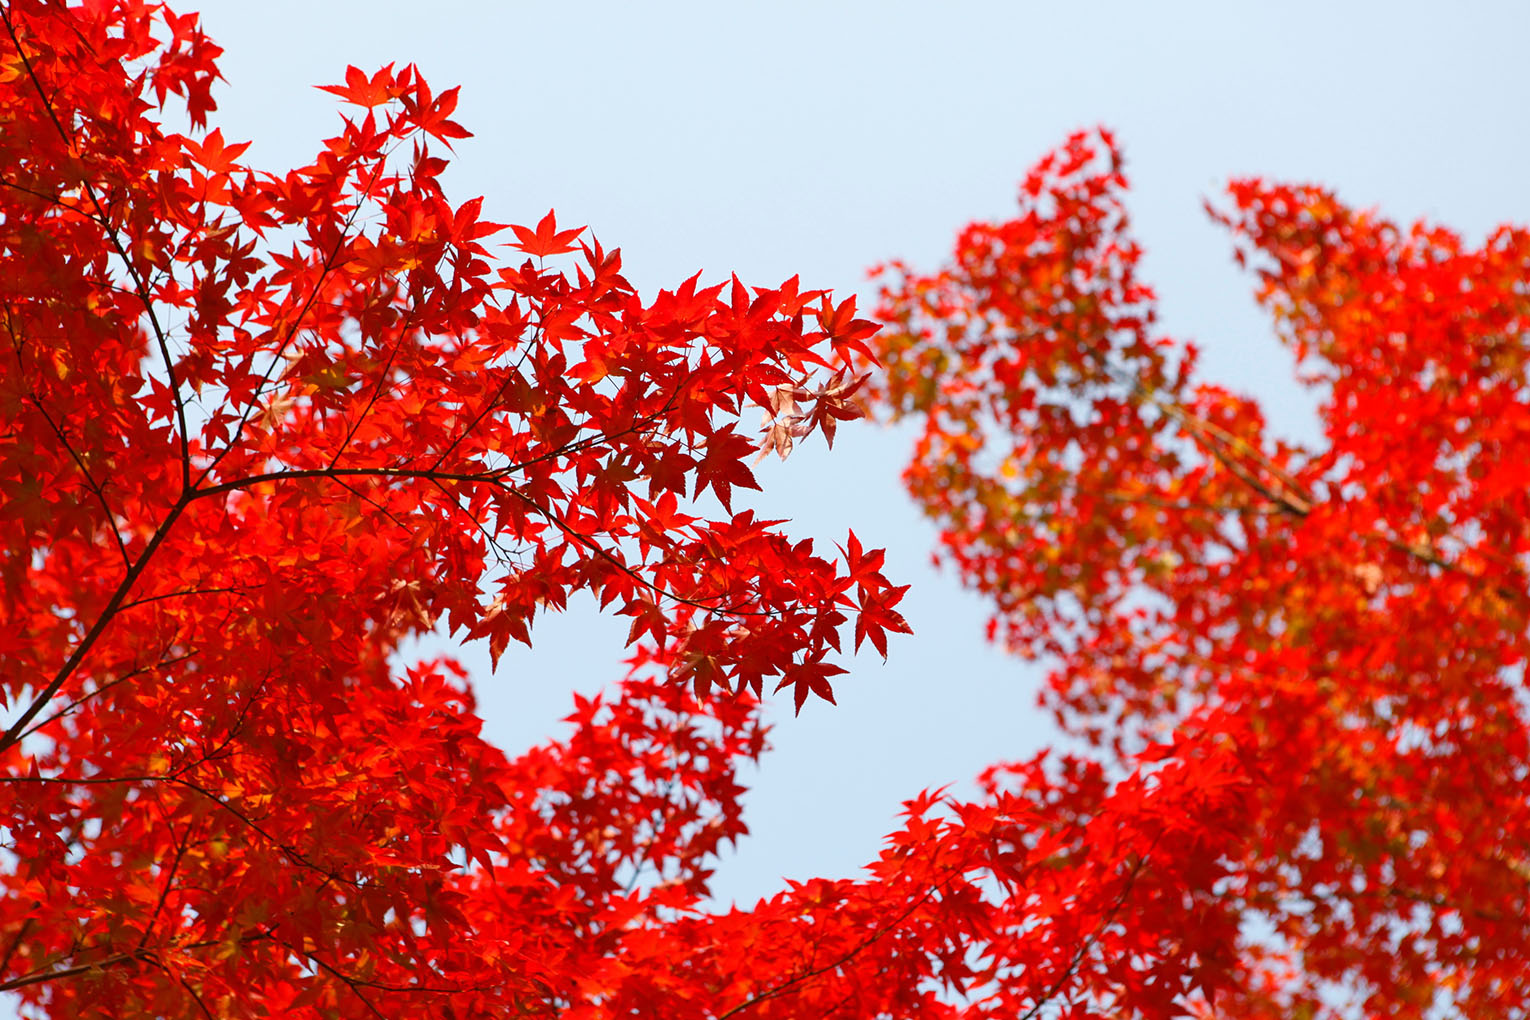 red-autumn-leaves-1530x1020px